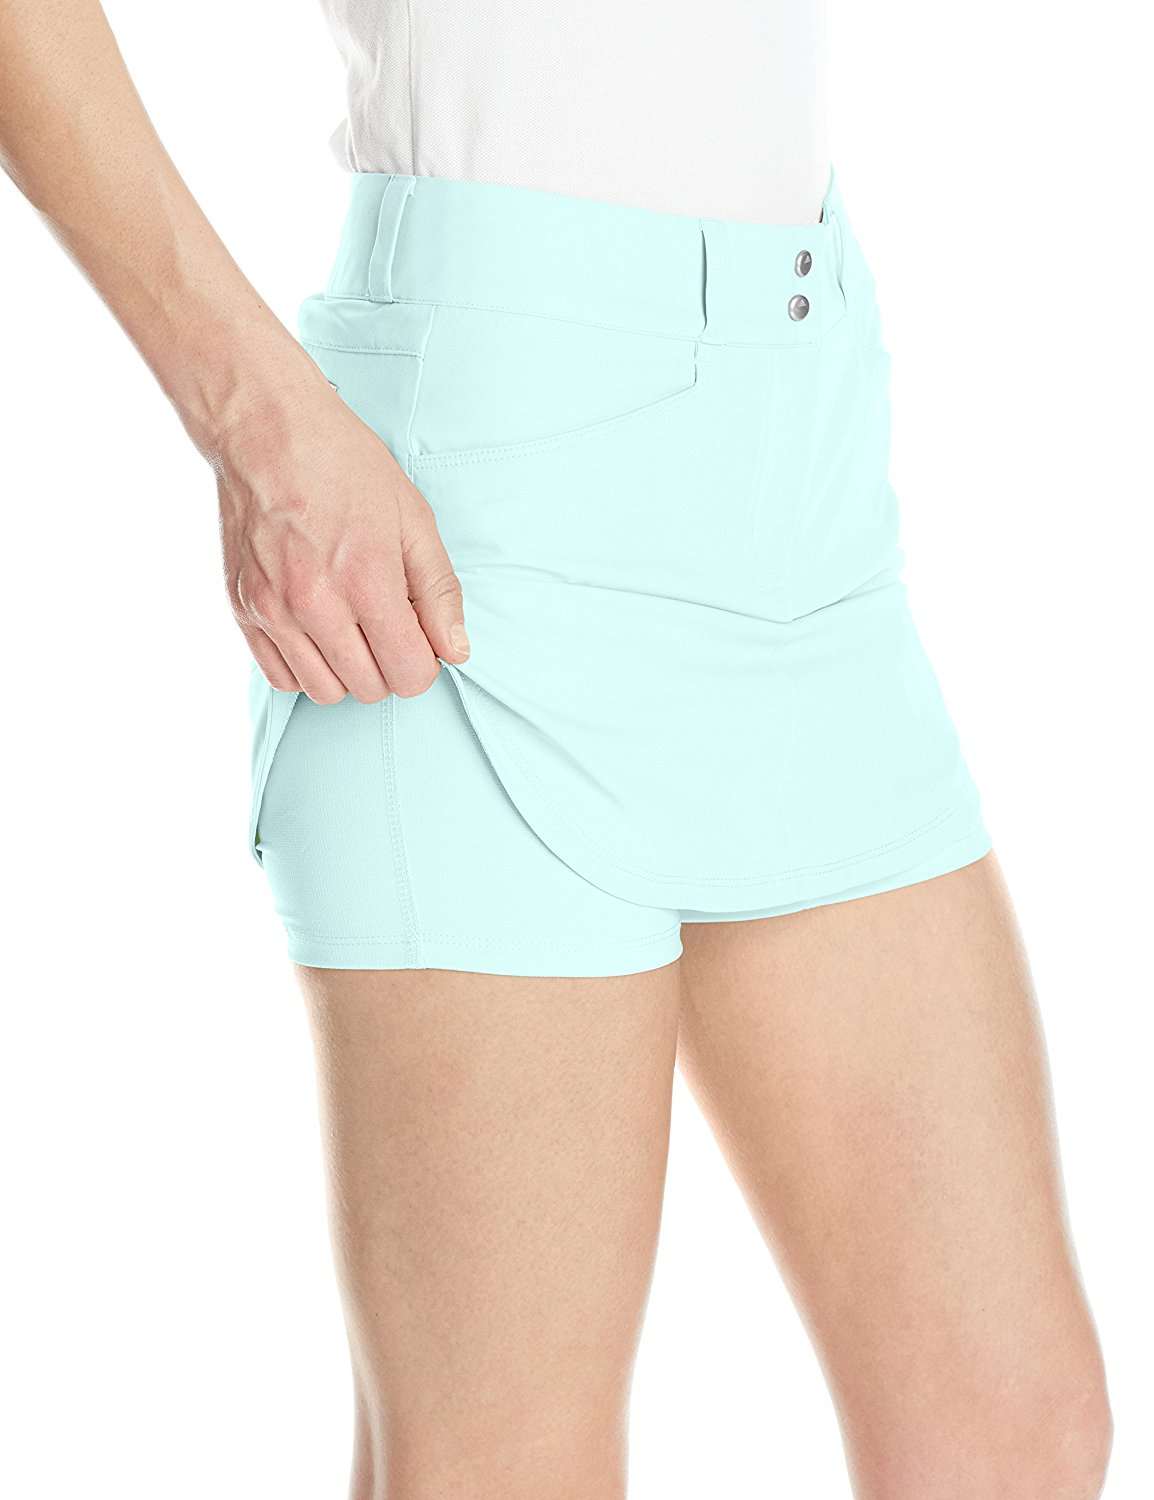 Adidas-Golf-Women-039-s-Essentials-3-Stripes-Skort-Pick-Size-amp-Color thumbnail 17